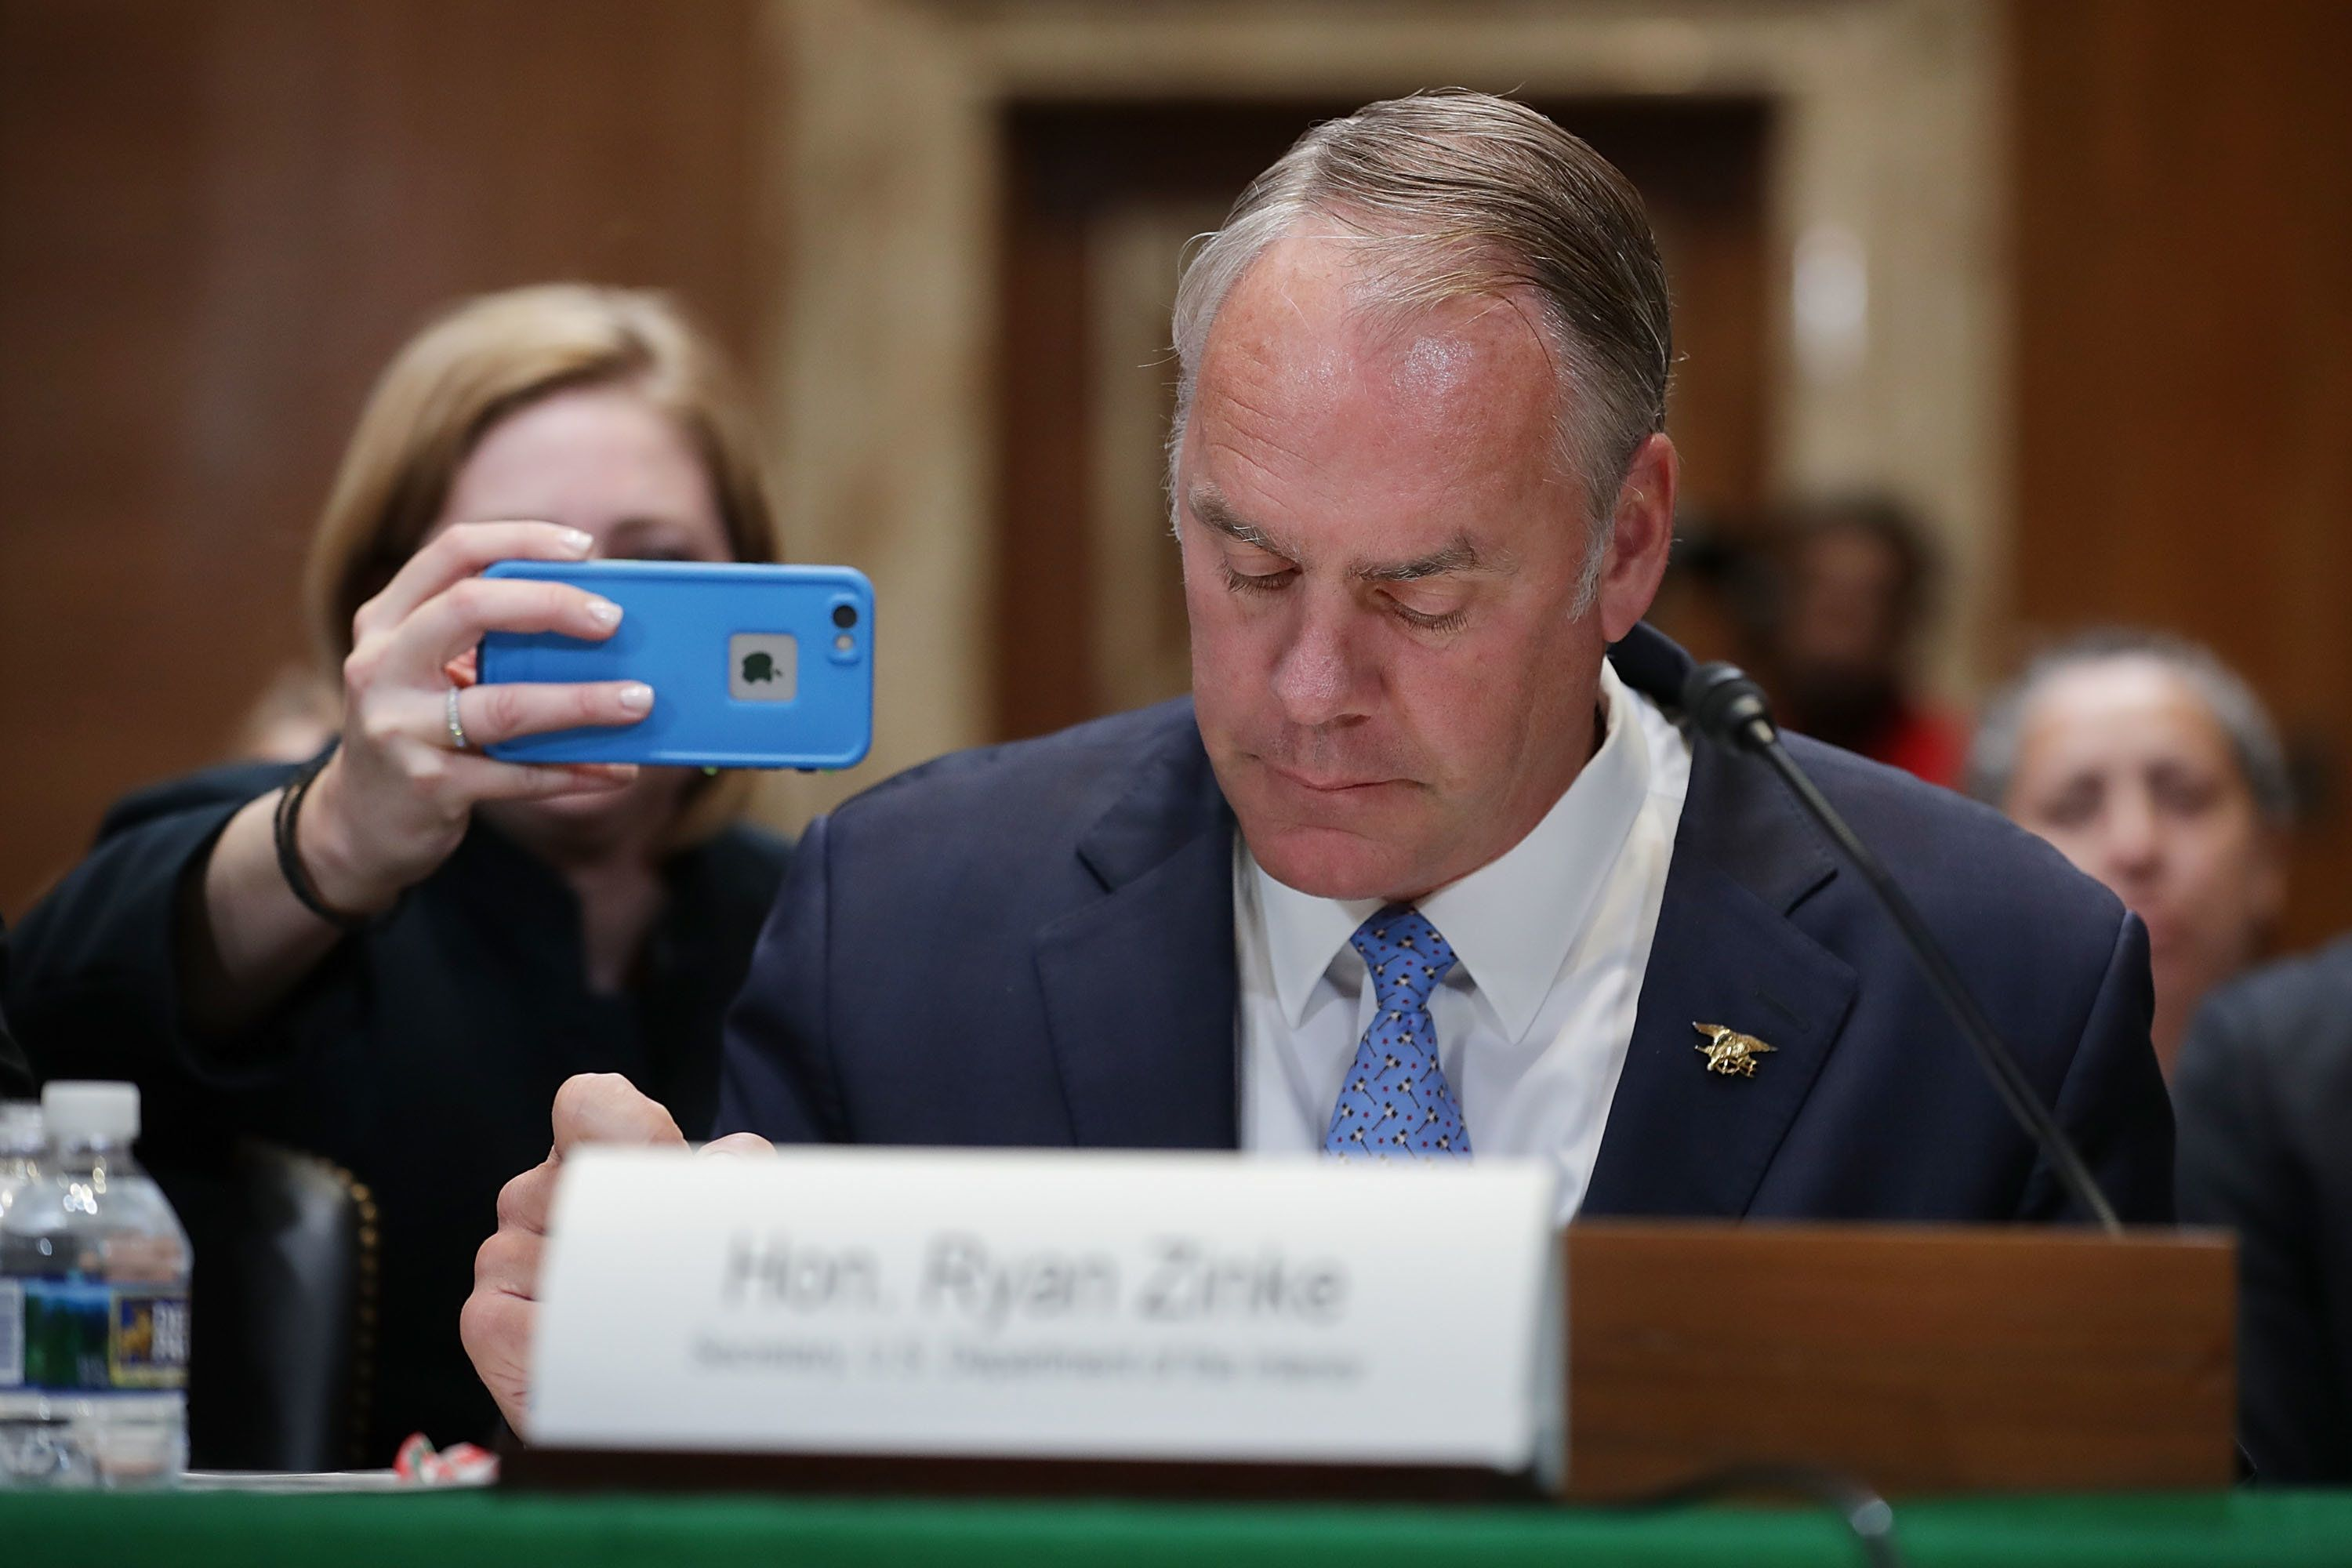 Interior Secretary Ryan Zinke might stand to gain from a Montana real estate development project that includes a microbrewery